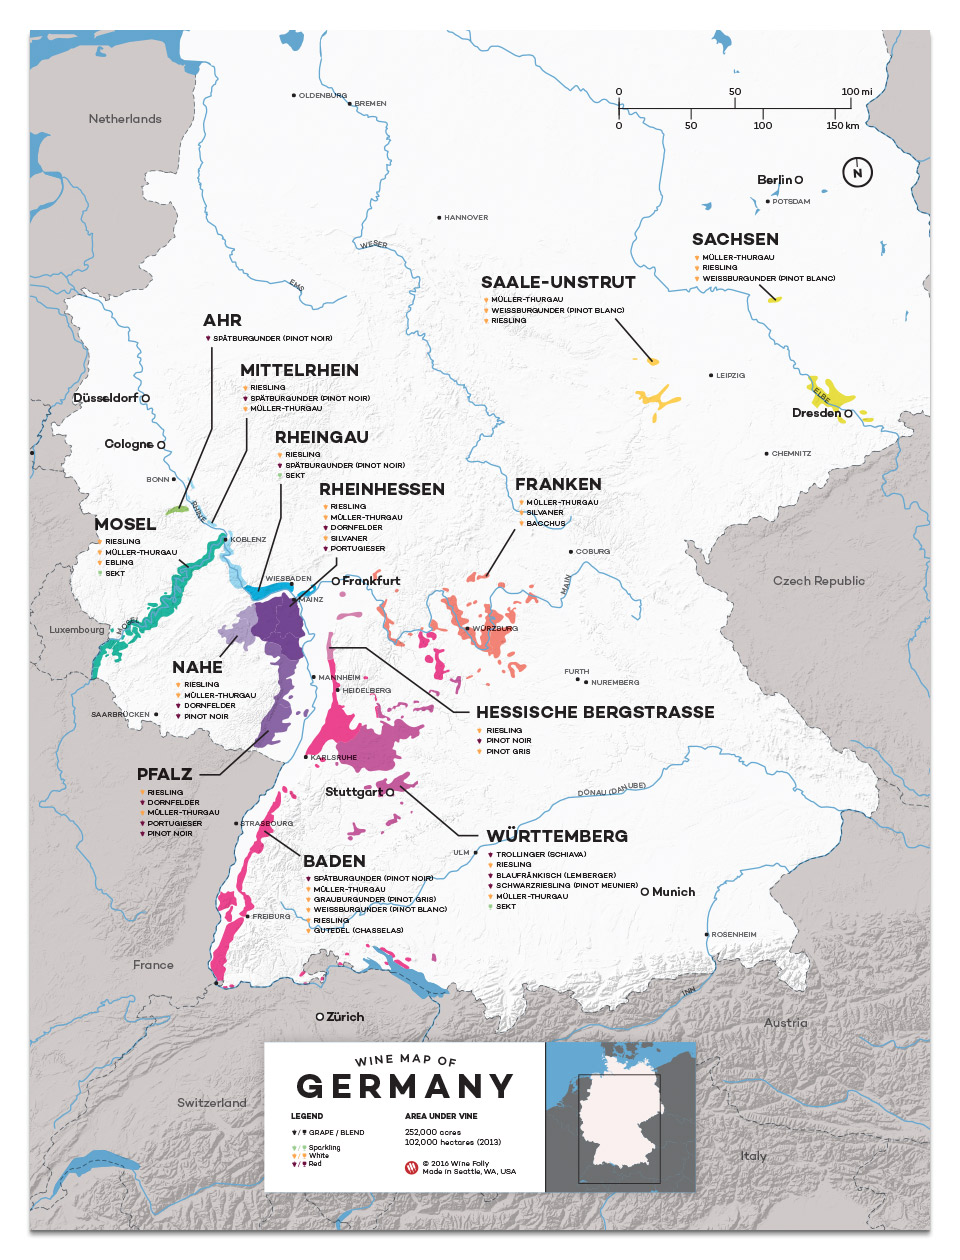 Germany wine regions map by Wine Folly